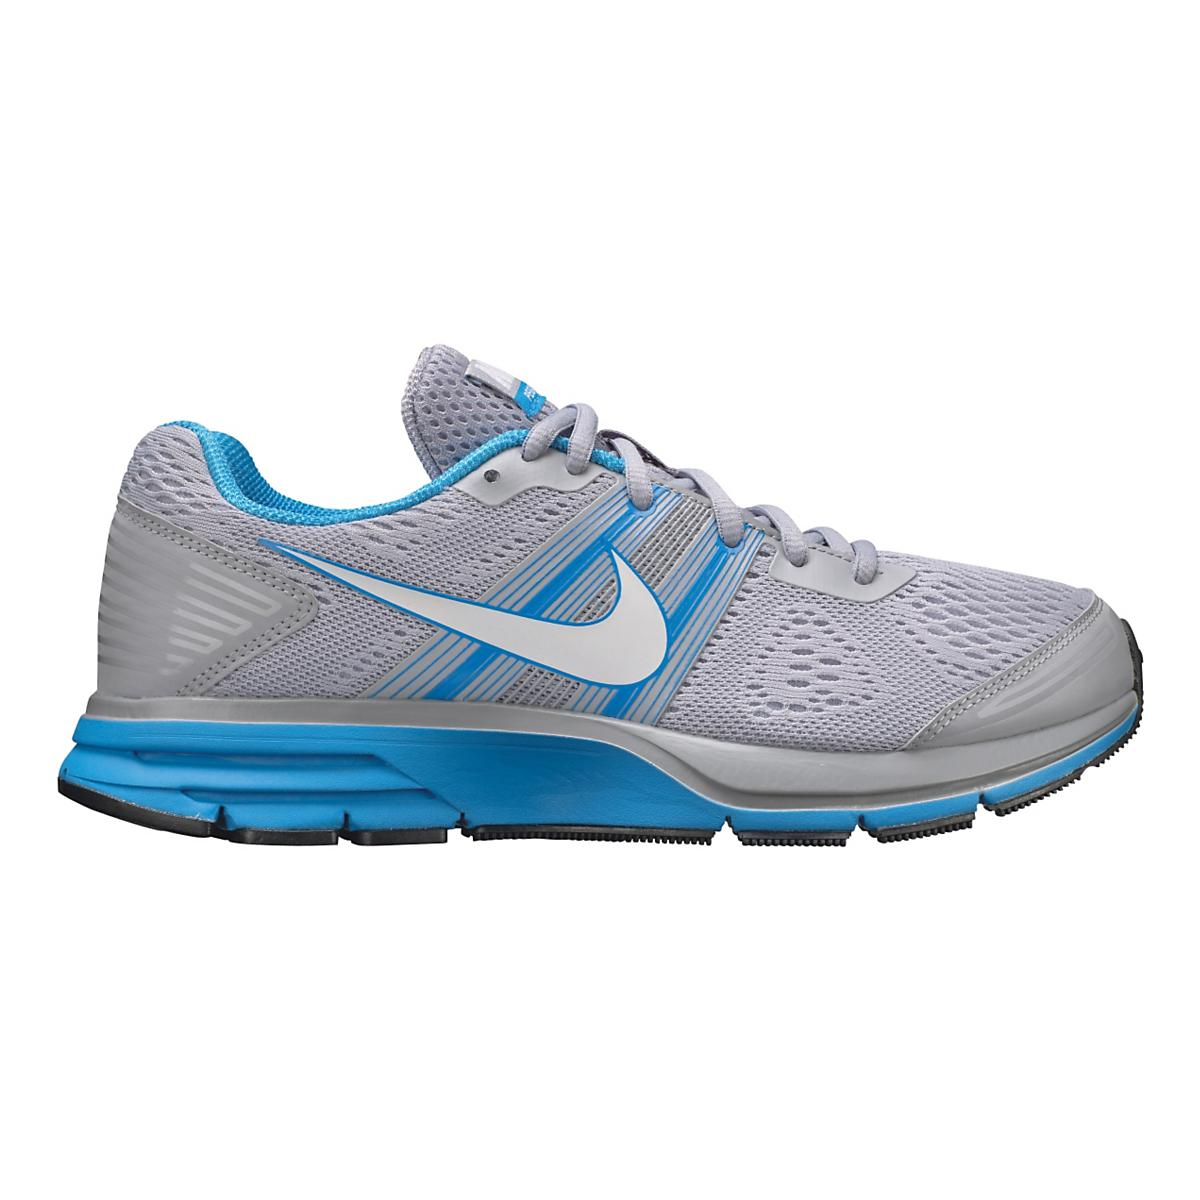 purchase cheap 470bc c962b Womens Nike Air Pegasus+ 29 Running Shoe at Road Runner Sports